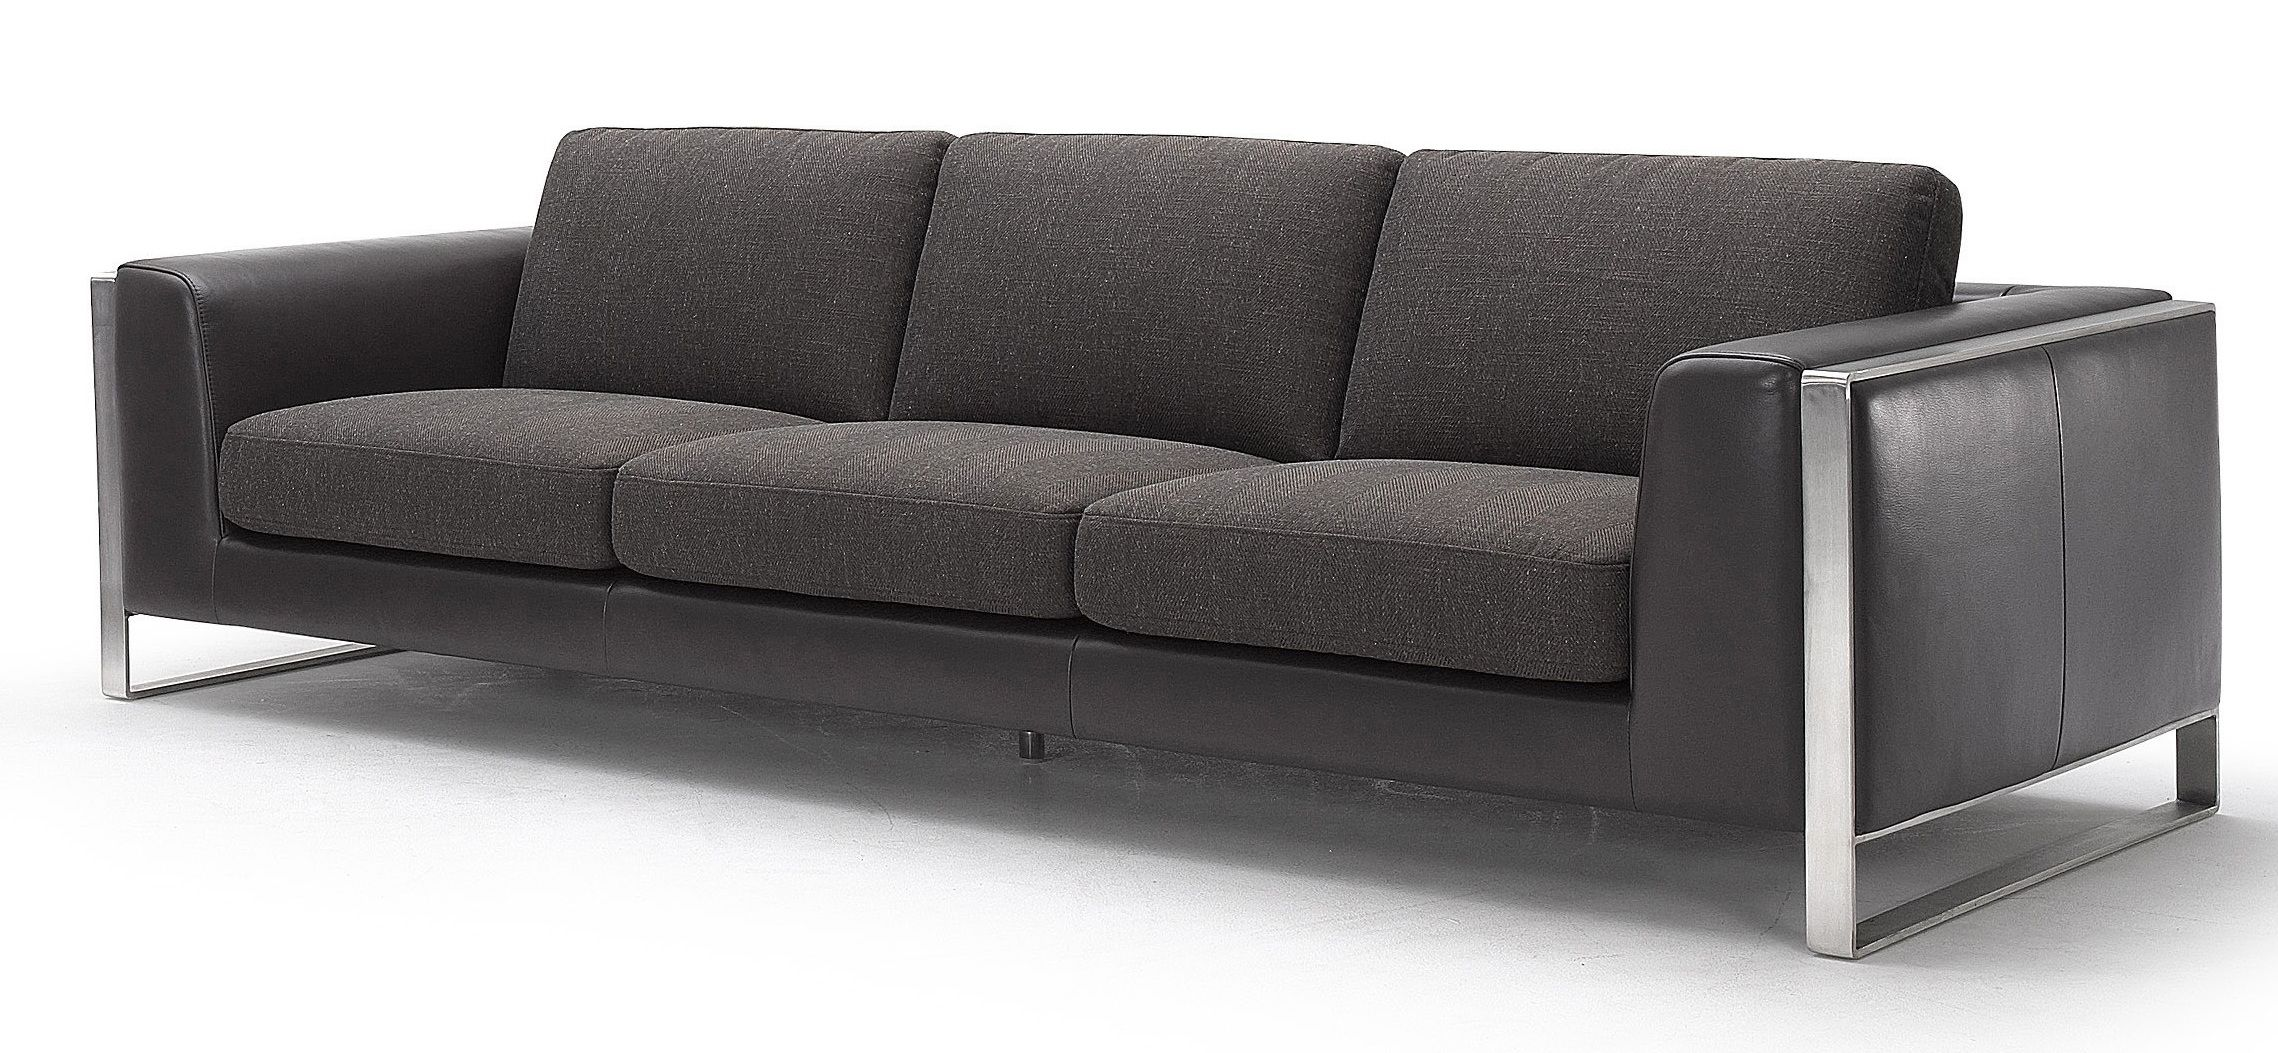 Home furniture improvement with contemporary sofa huz for Modern sofa chair